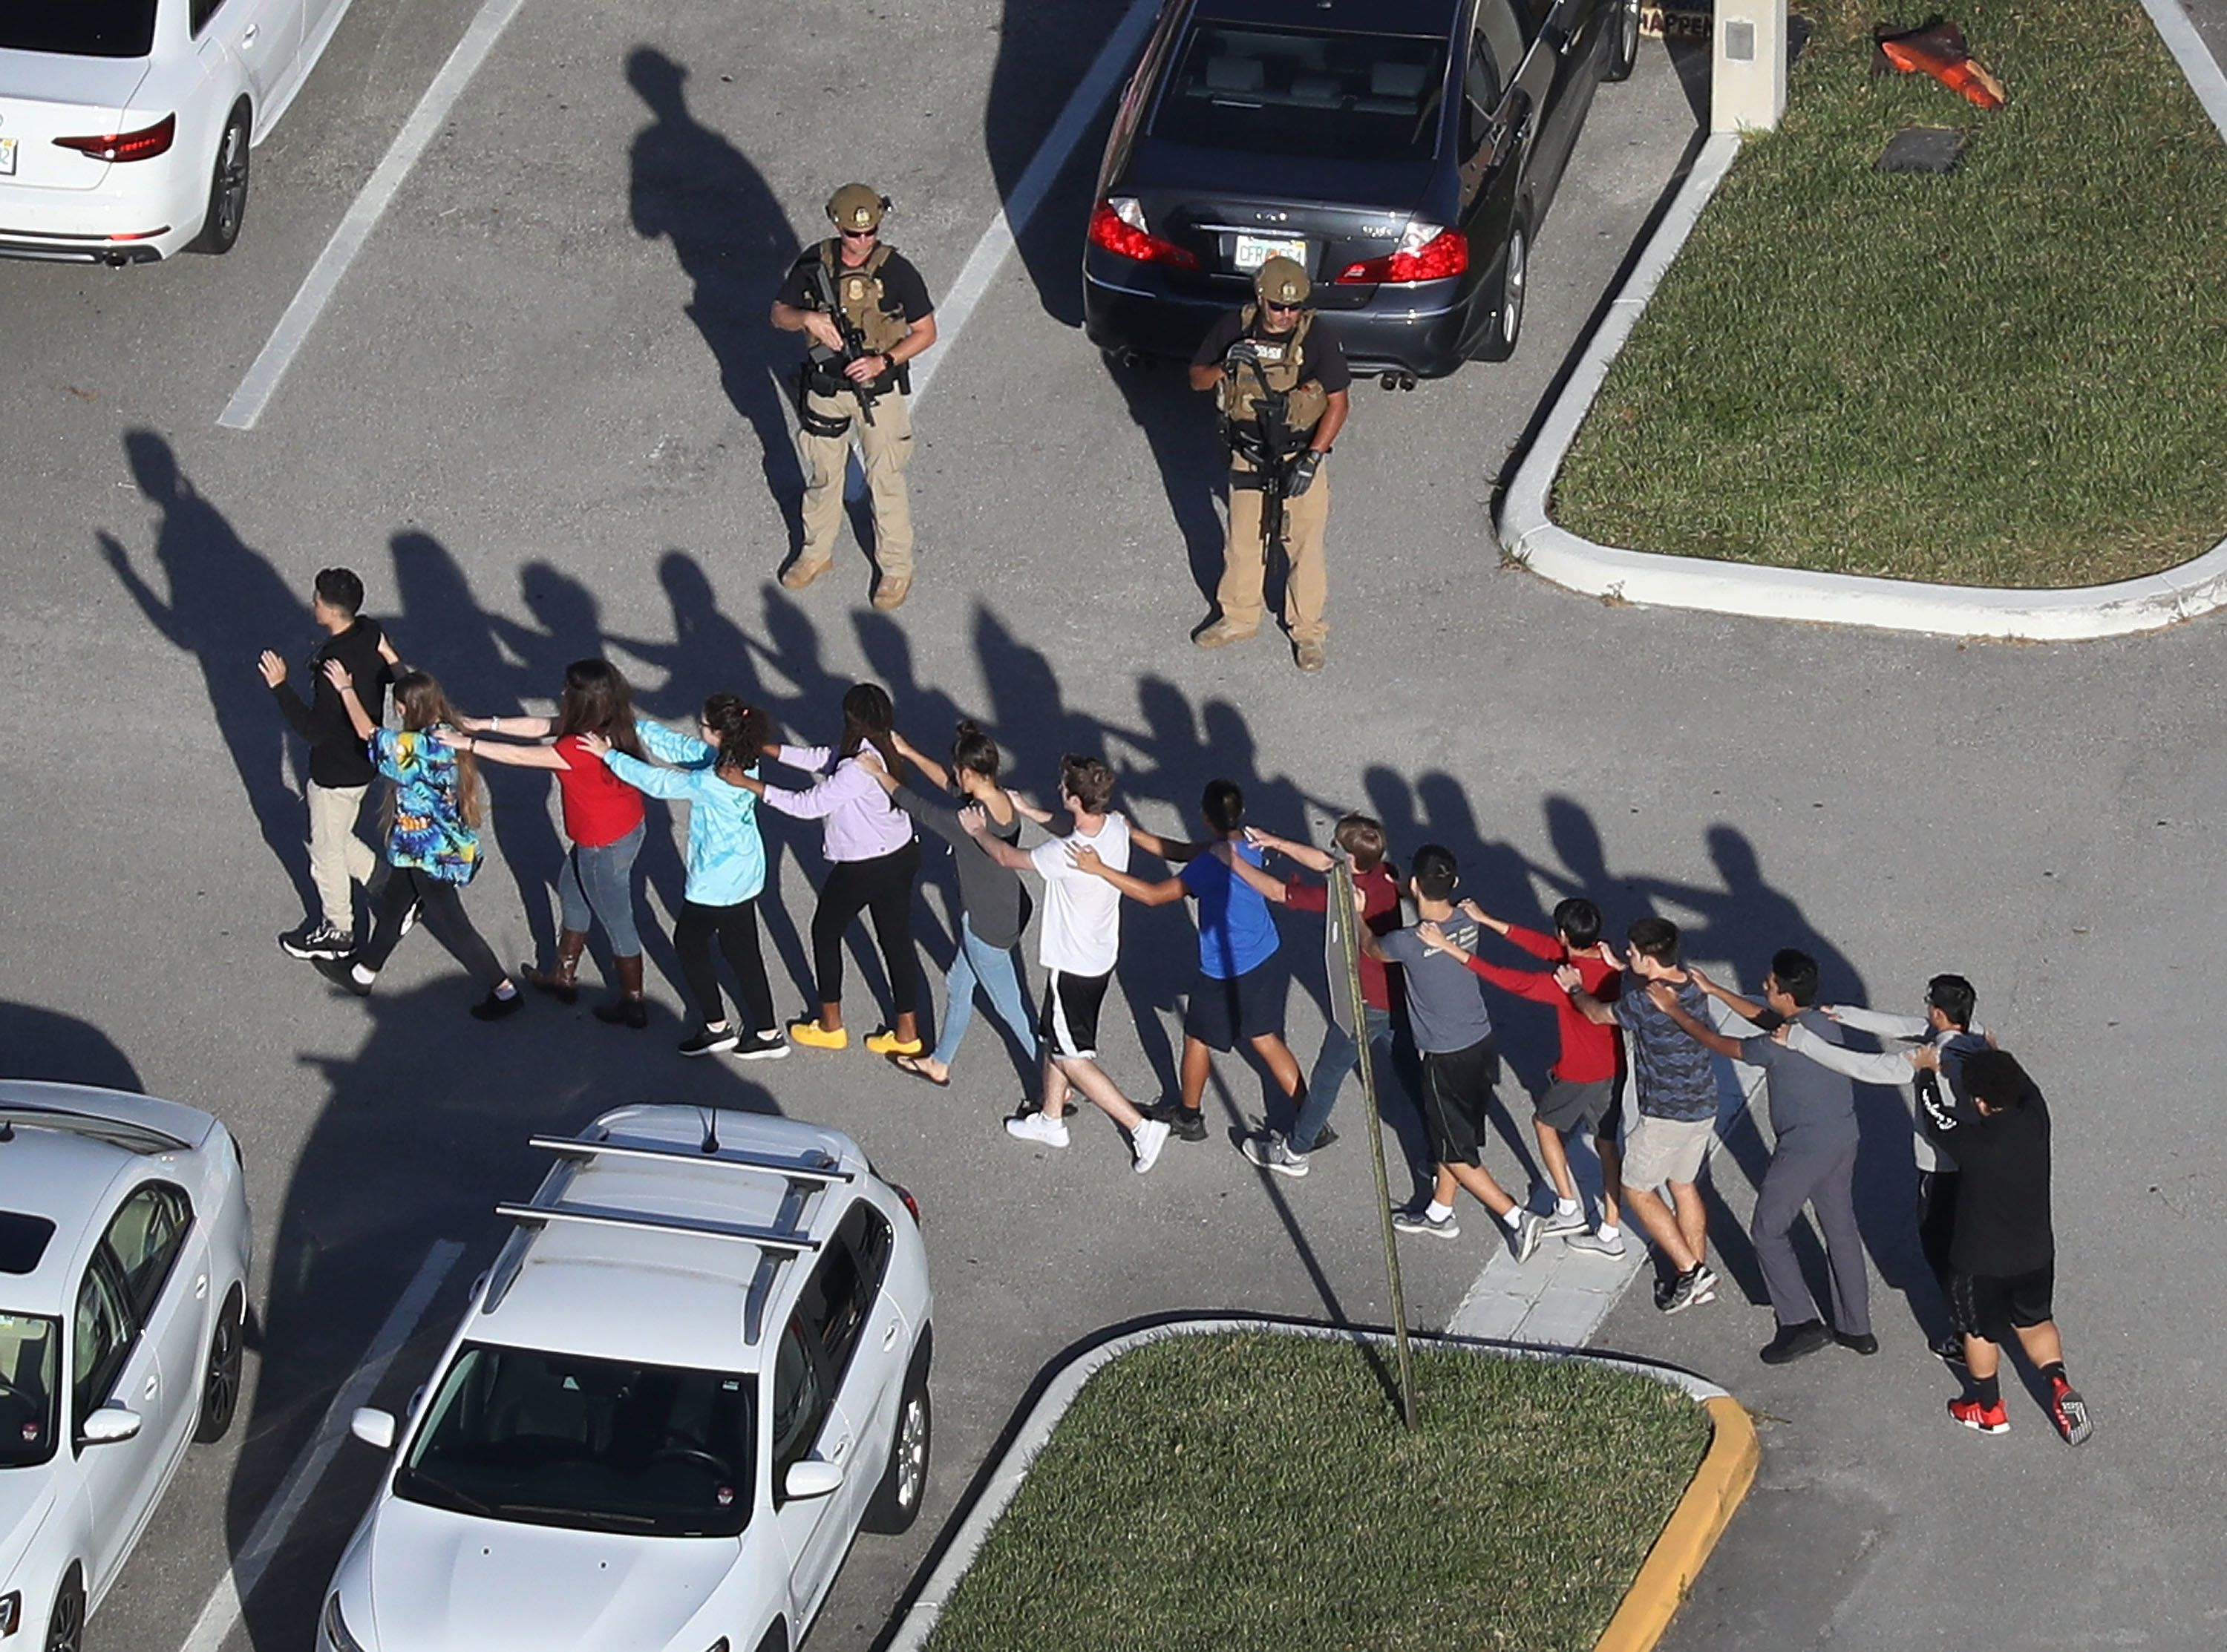 Students flee Marjory Stoneman Douglas High School after a teen with an AR-15 rifle killed and injured more than two doz